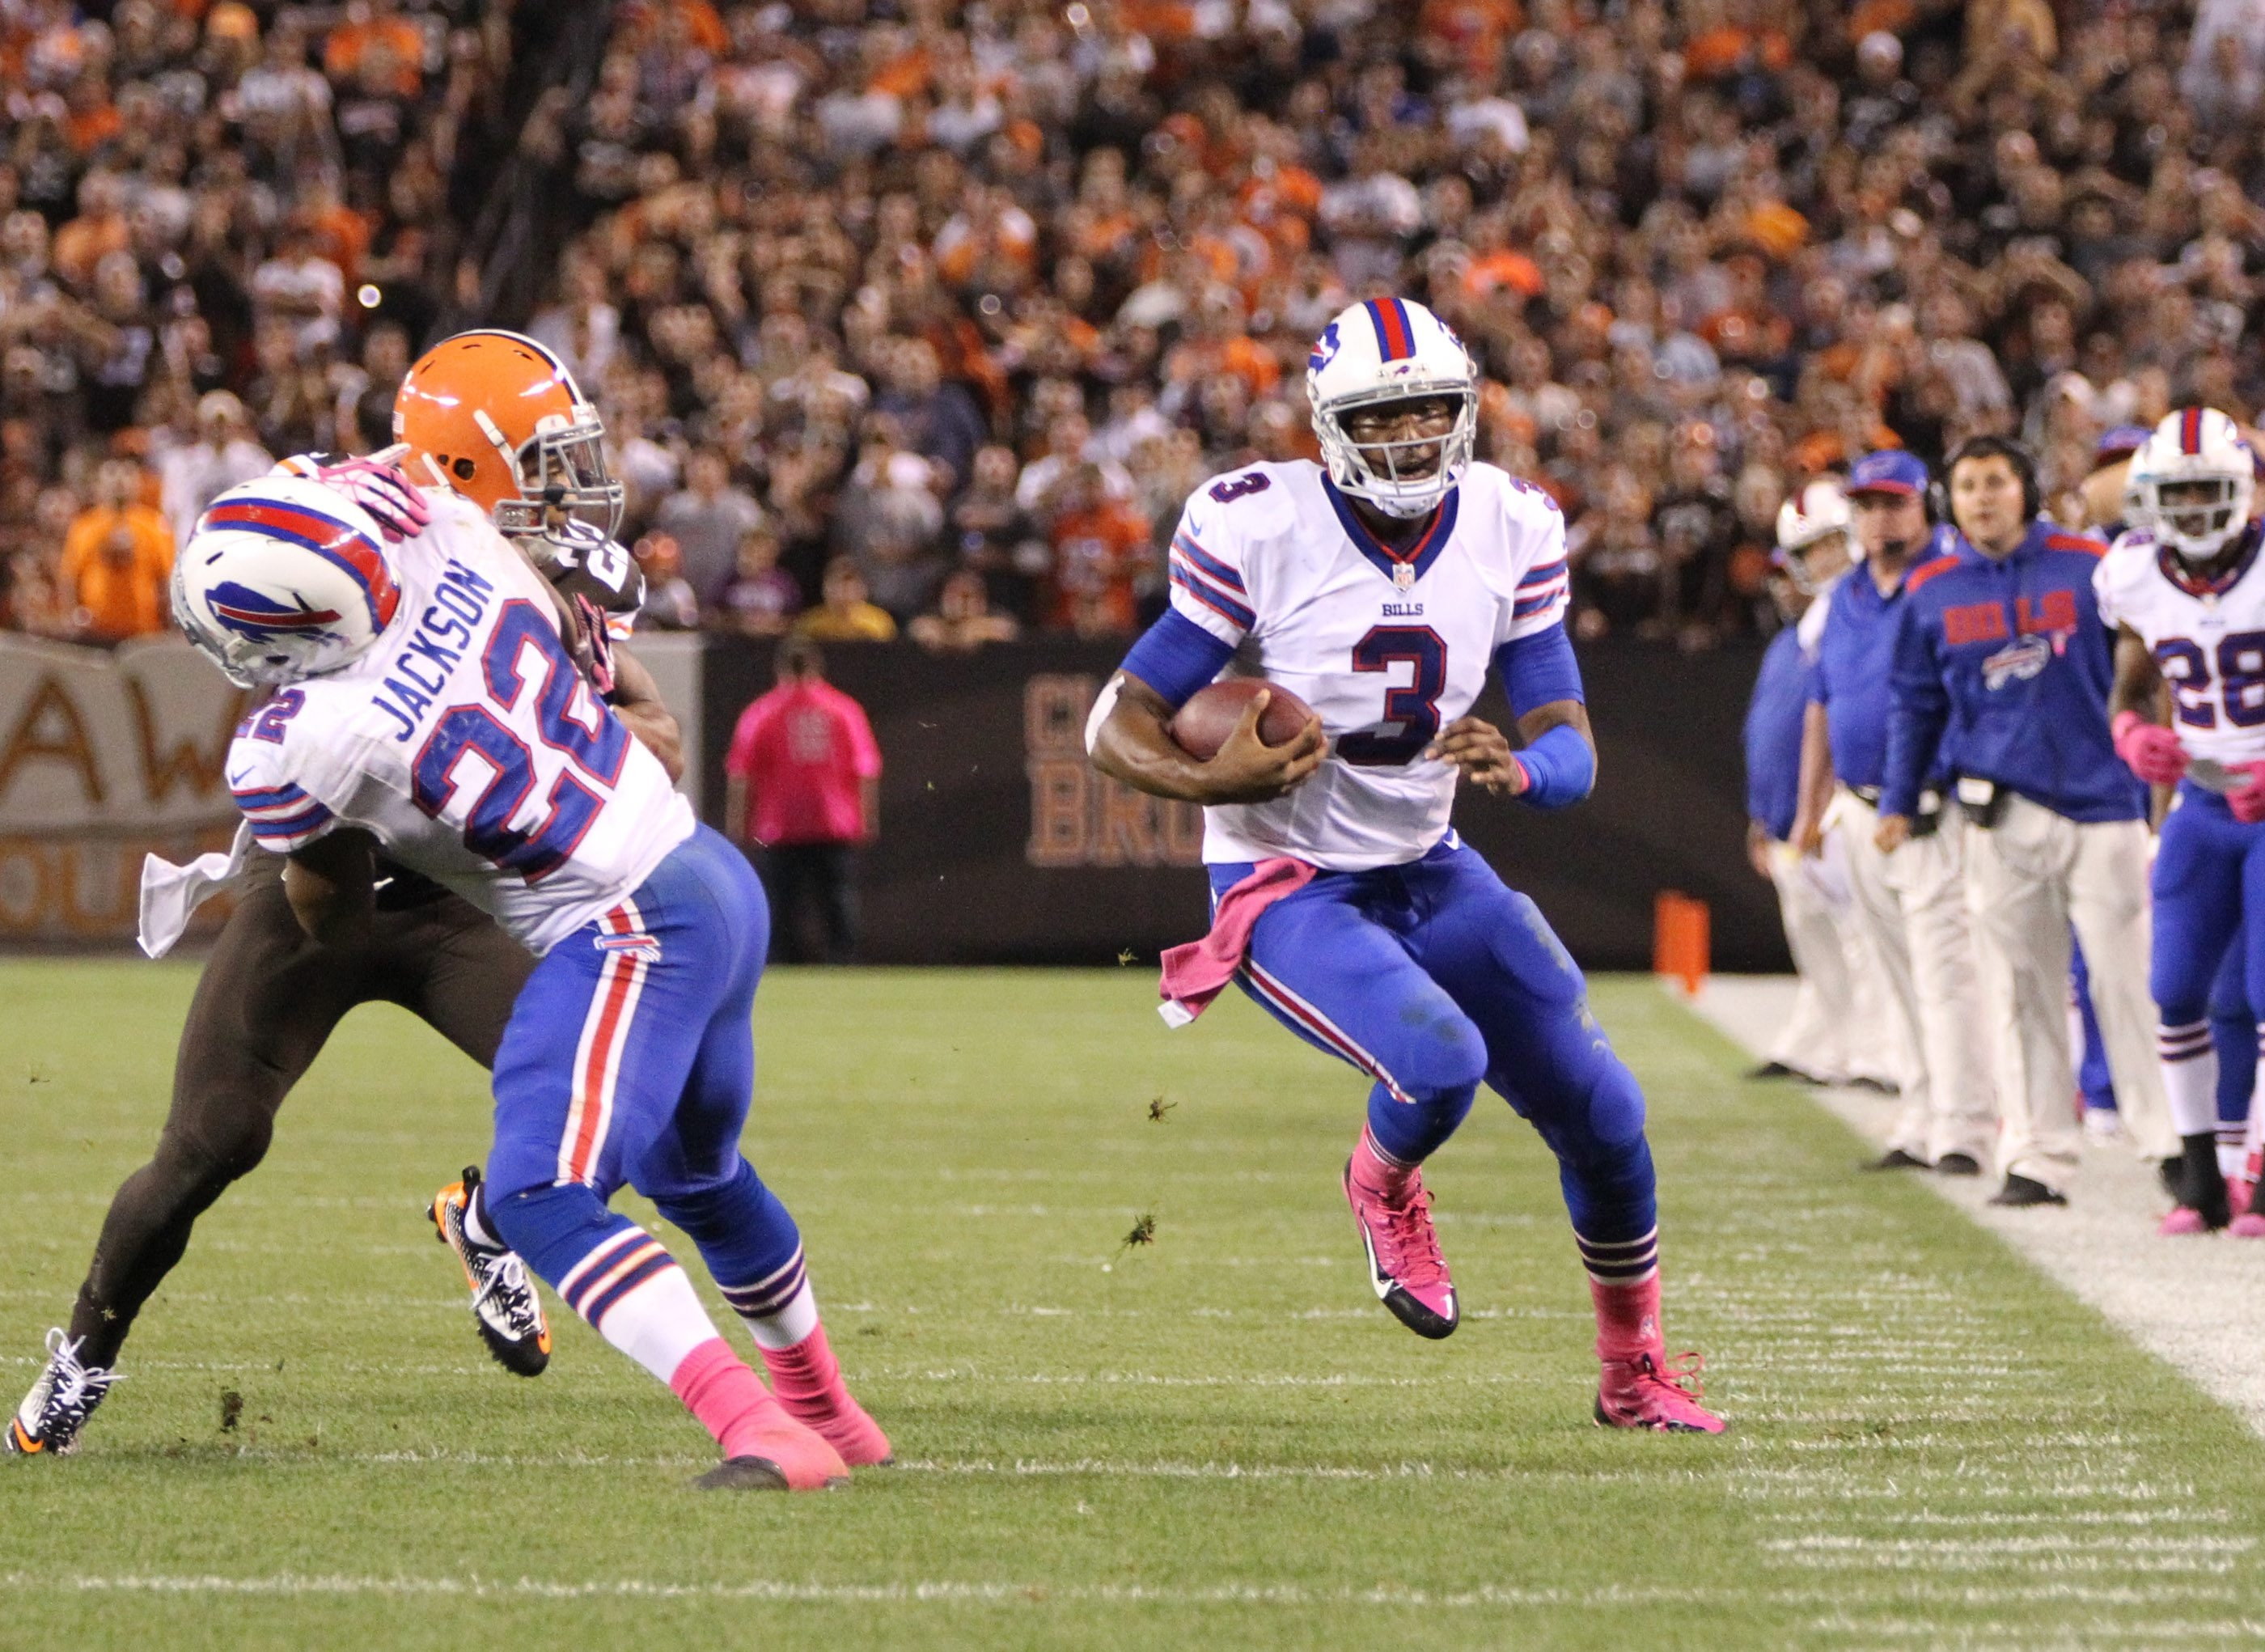 EJ Manuel (3) takes off on his run against the Browns that would lead to his knee injury, forcing Thad Lewis into his starting role for today's game against Cincinnati.